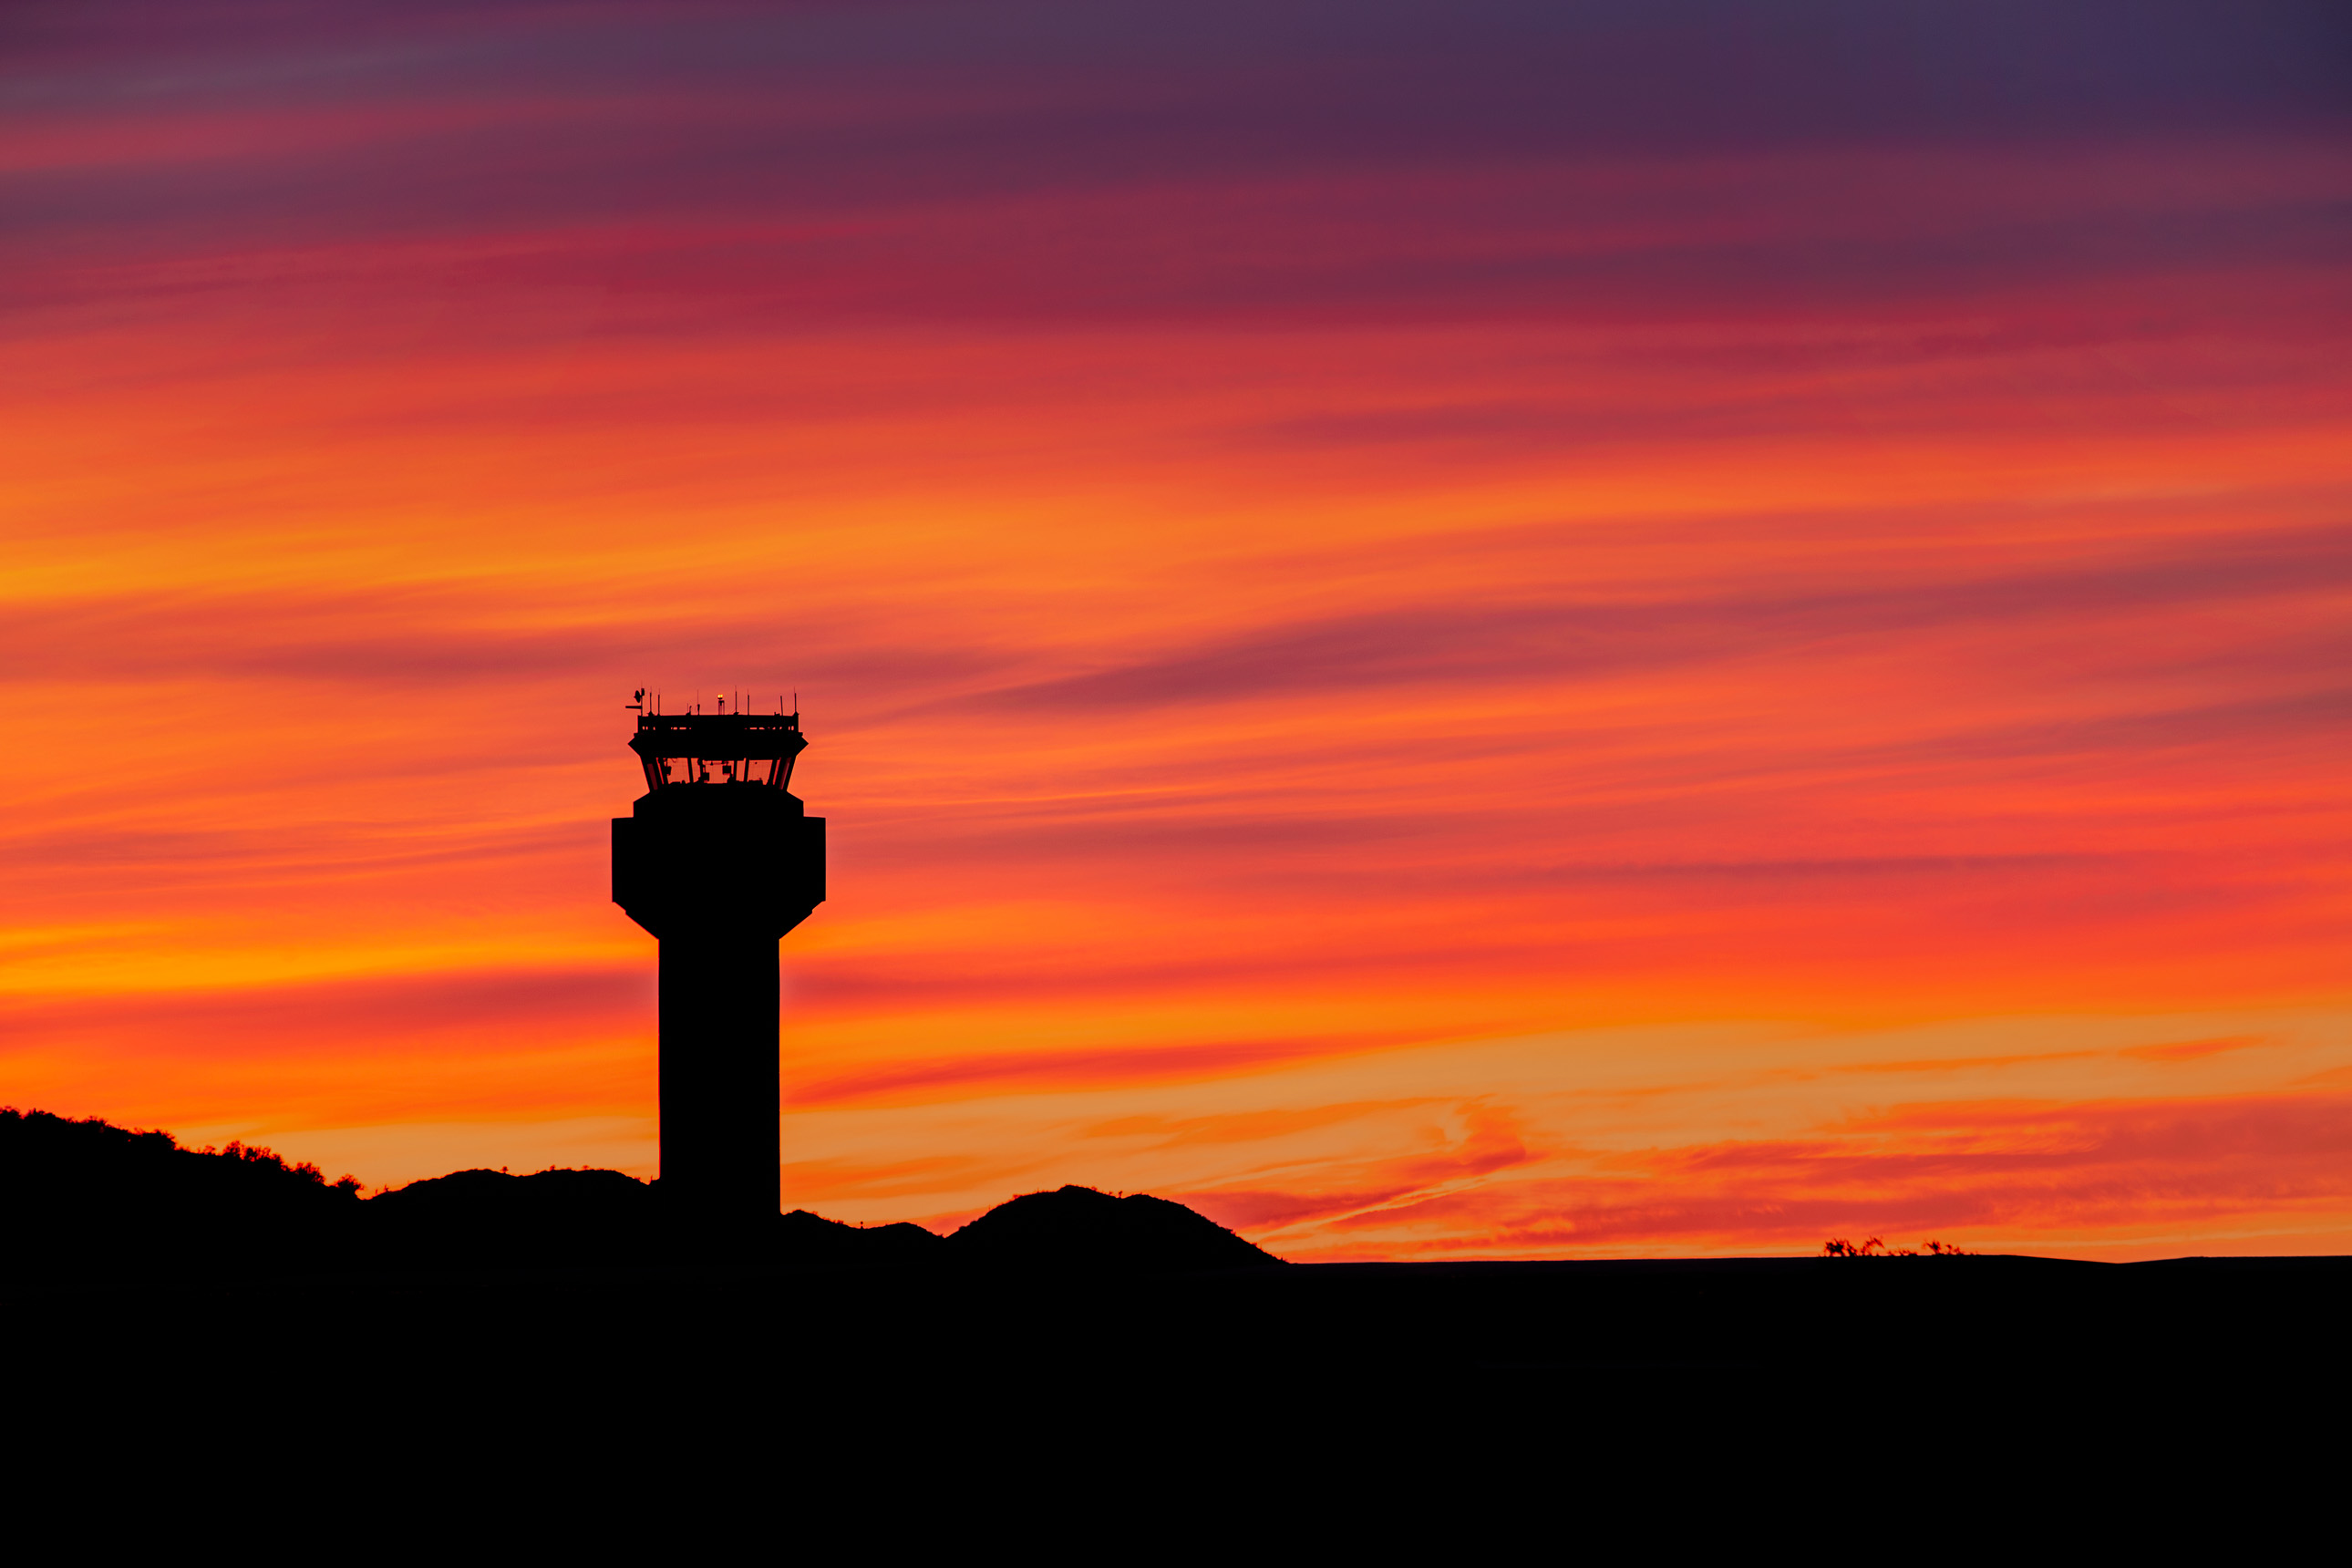 Beautiful vibrant sunset with Deer Valley Airport's tower in the foreground